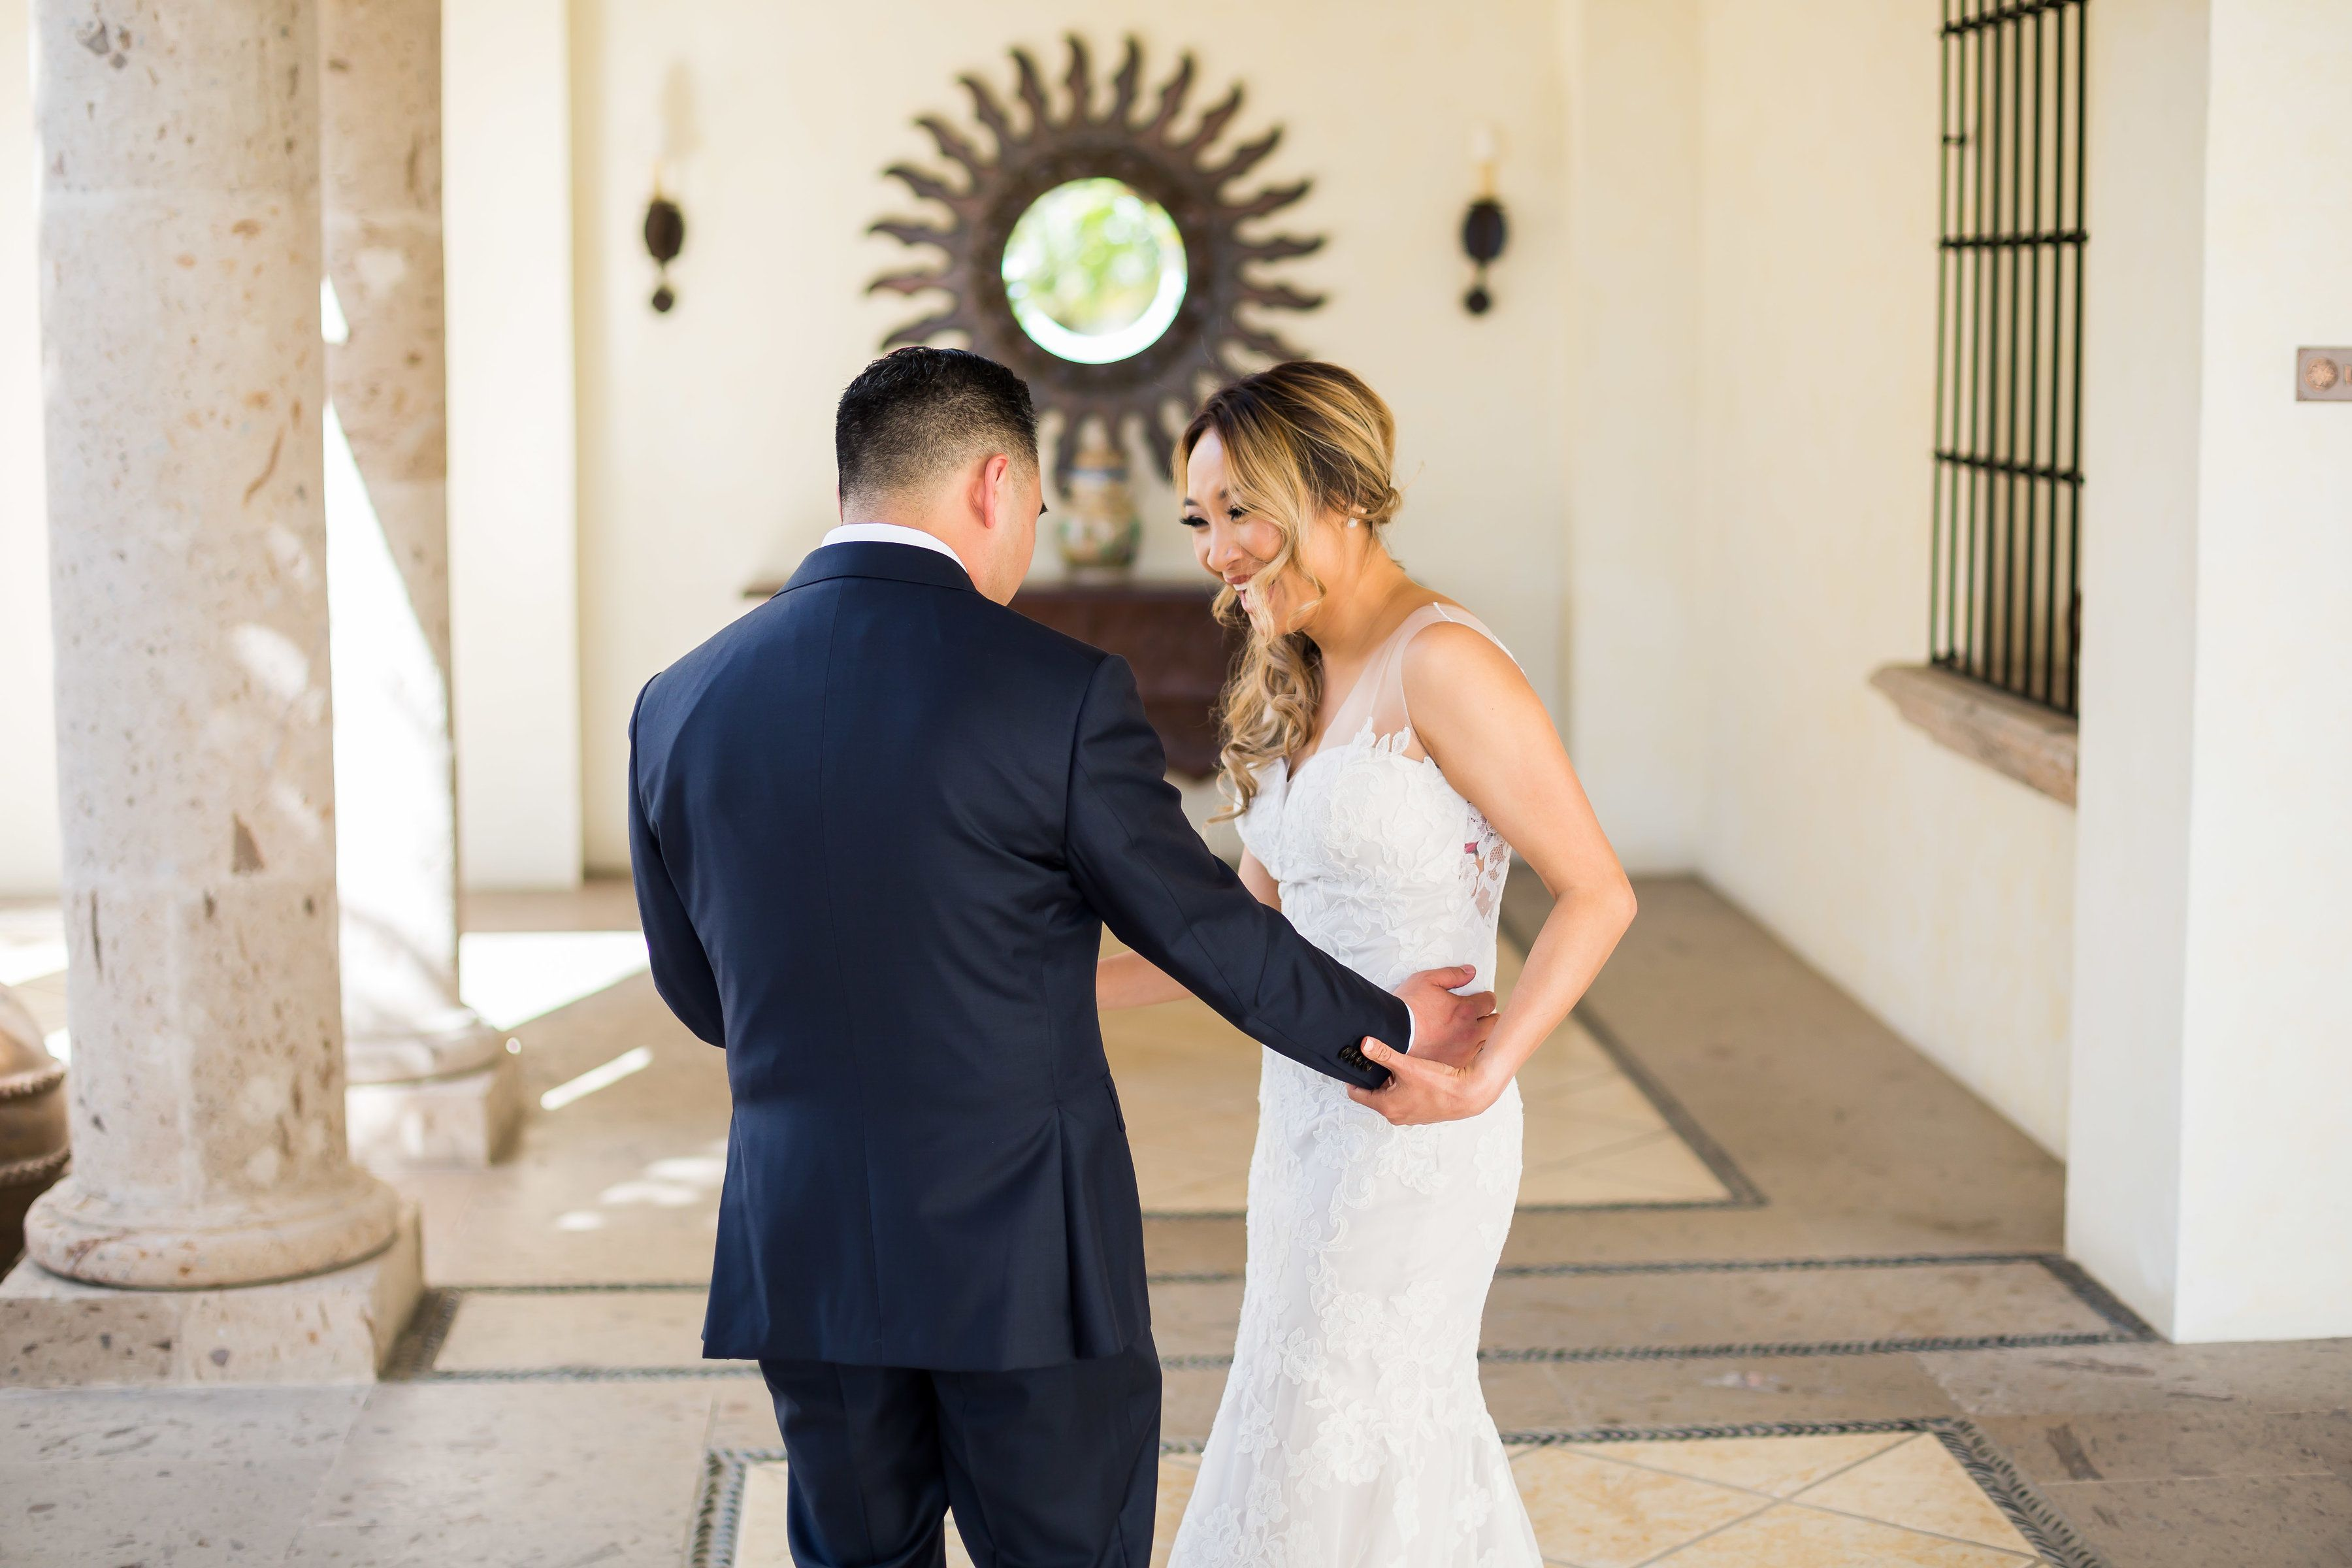 Groom seeing the Bride for the First Time before the Ceremony doing their First Look. The Wedding Venue is at Cabo del Sol, located in Cabo San Lucas Mexico. Wedding Planning by Cabo Wedding Services. The Photographers were Ana and Jerome